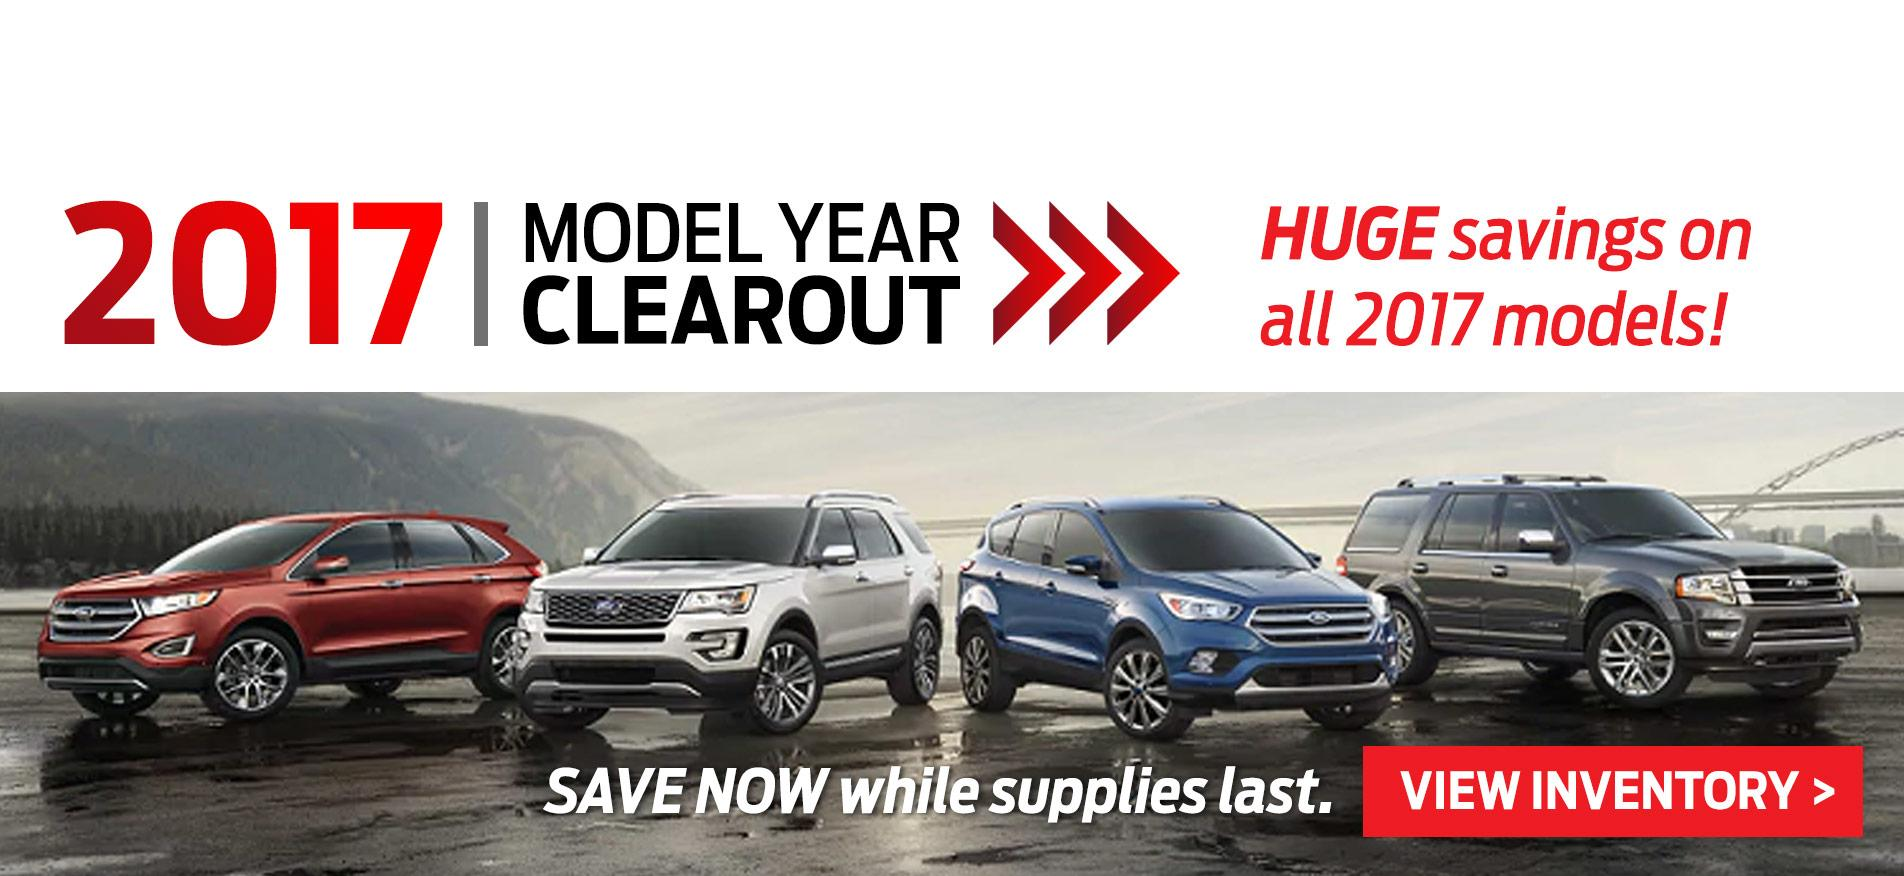 Cavalcade Ford 2017 Model Year Clear out